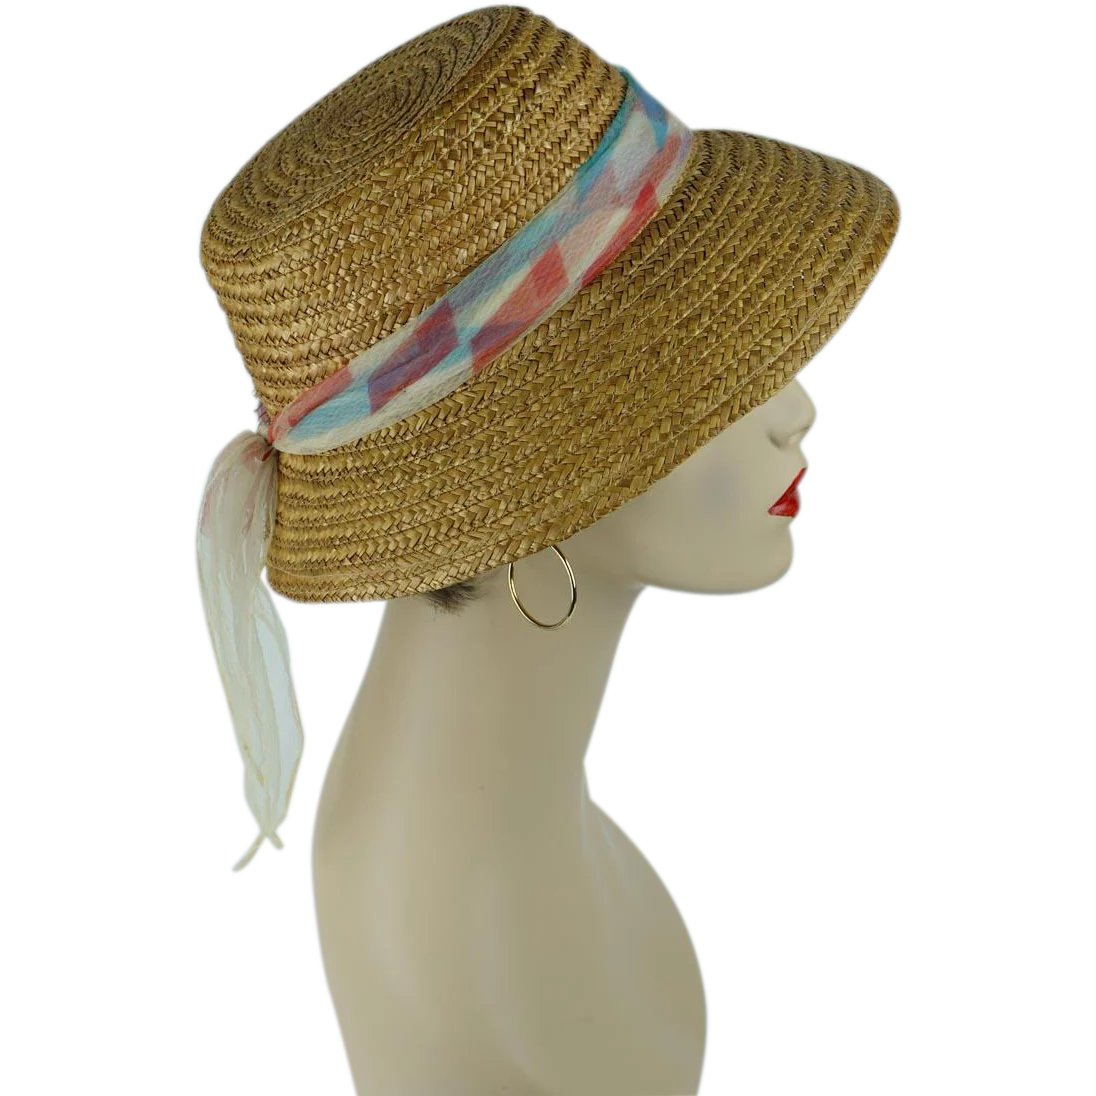 c9def2e1 1950s Vintage Sunhat Natural Straw Hat with Chiffon Scarf Sz M 21 1/2 :  Alley Cats Vintage | Ruby Lane